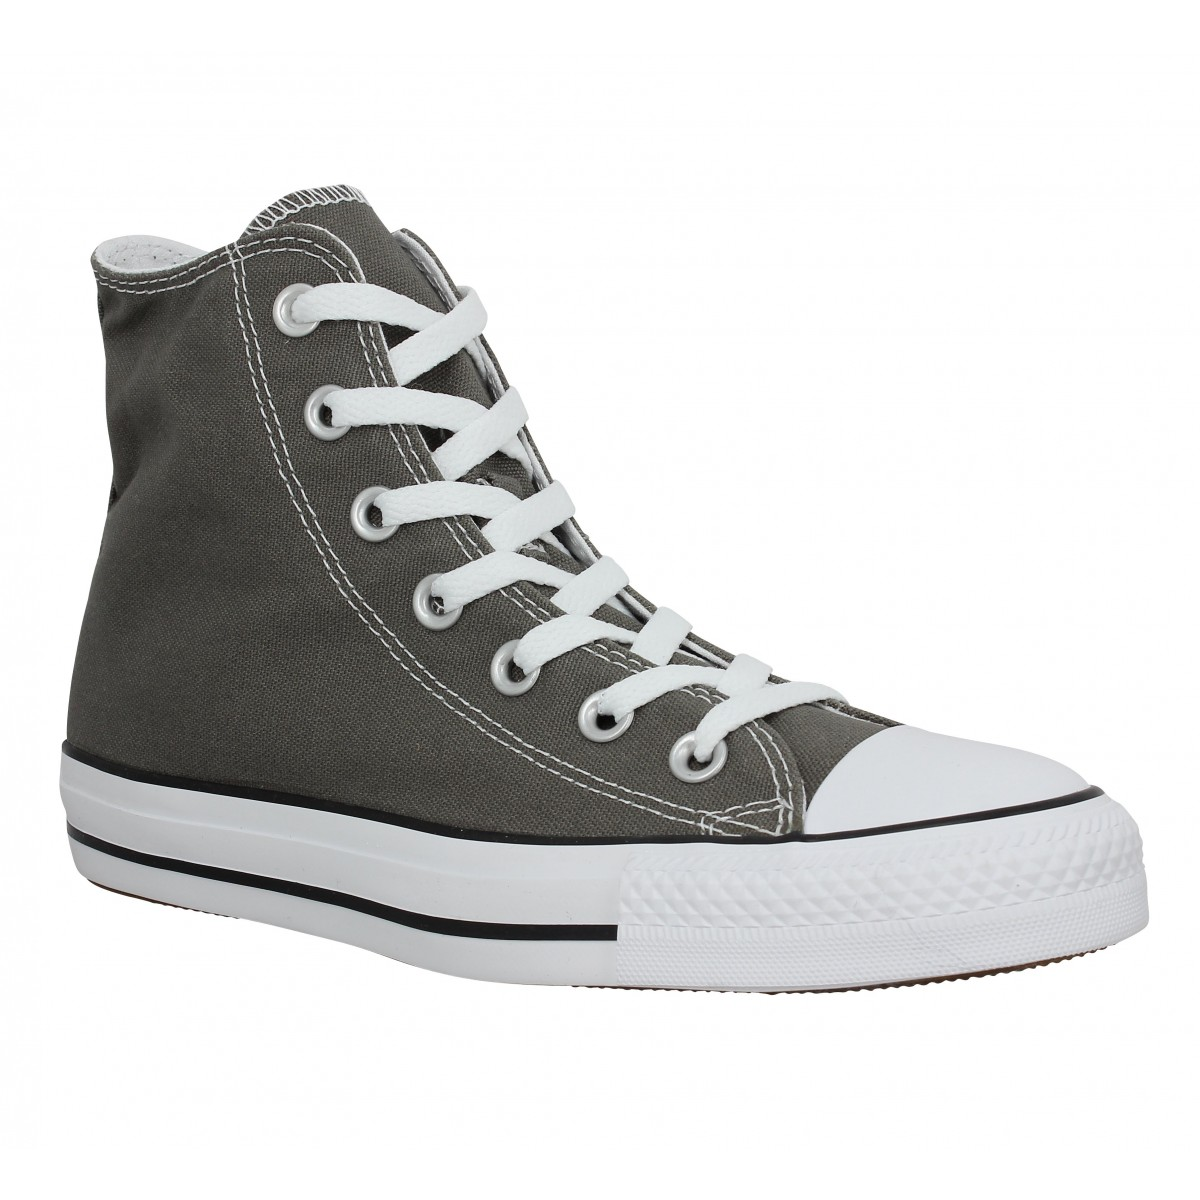 Baskets CONVERSE Chuck Taylor All Star Hi toile Femme Anthracite